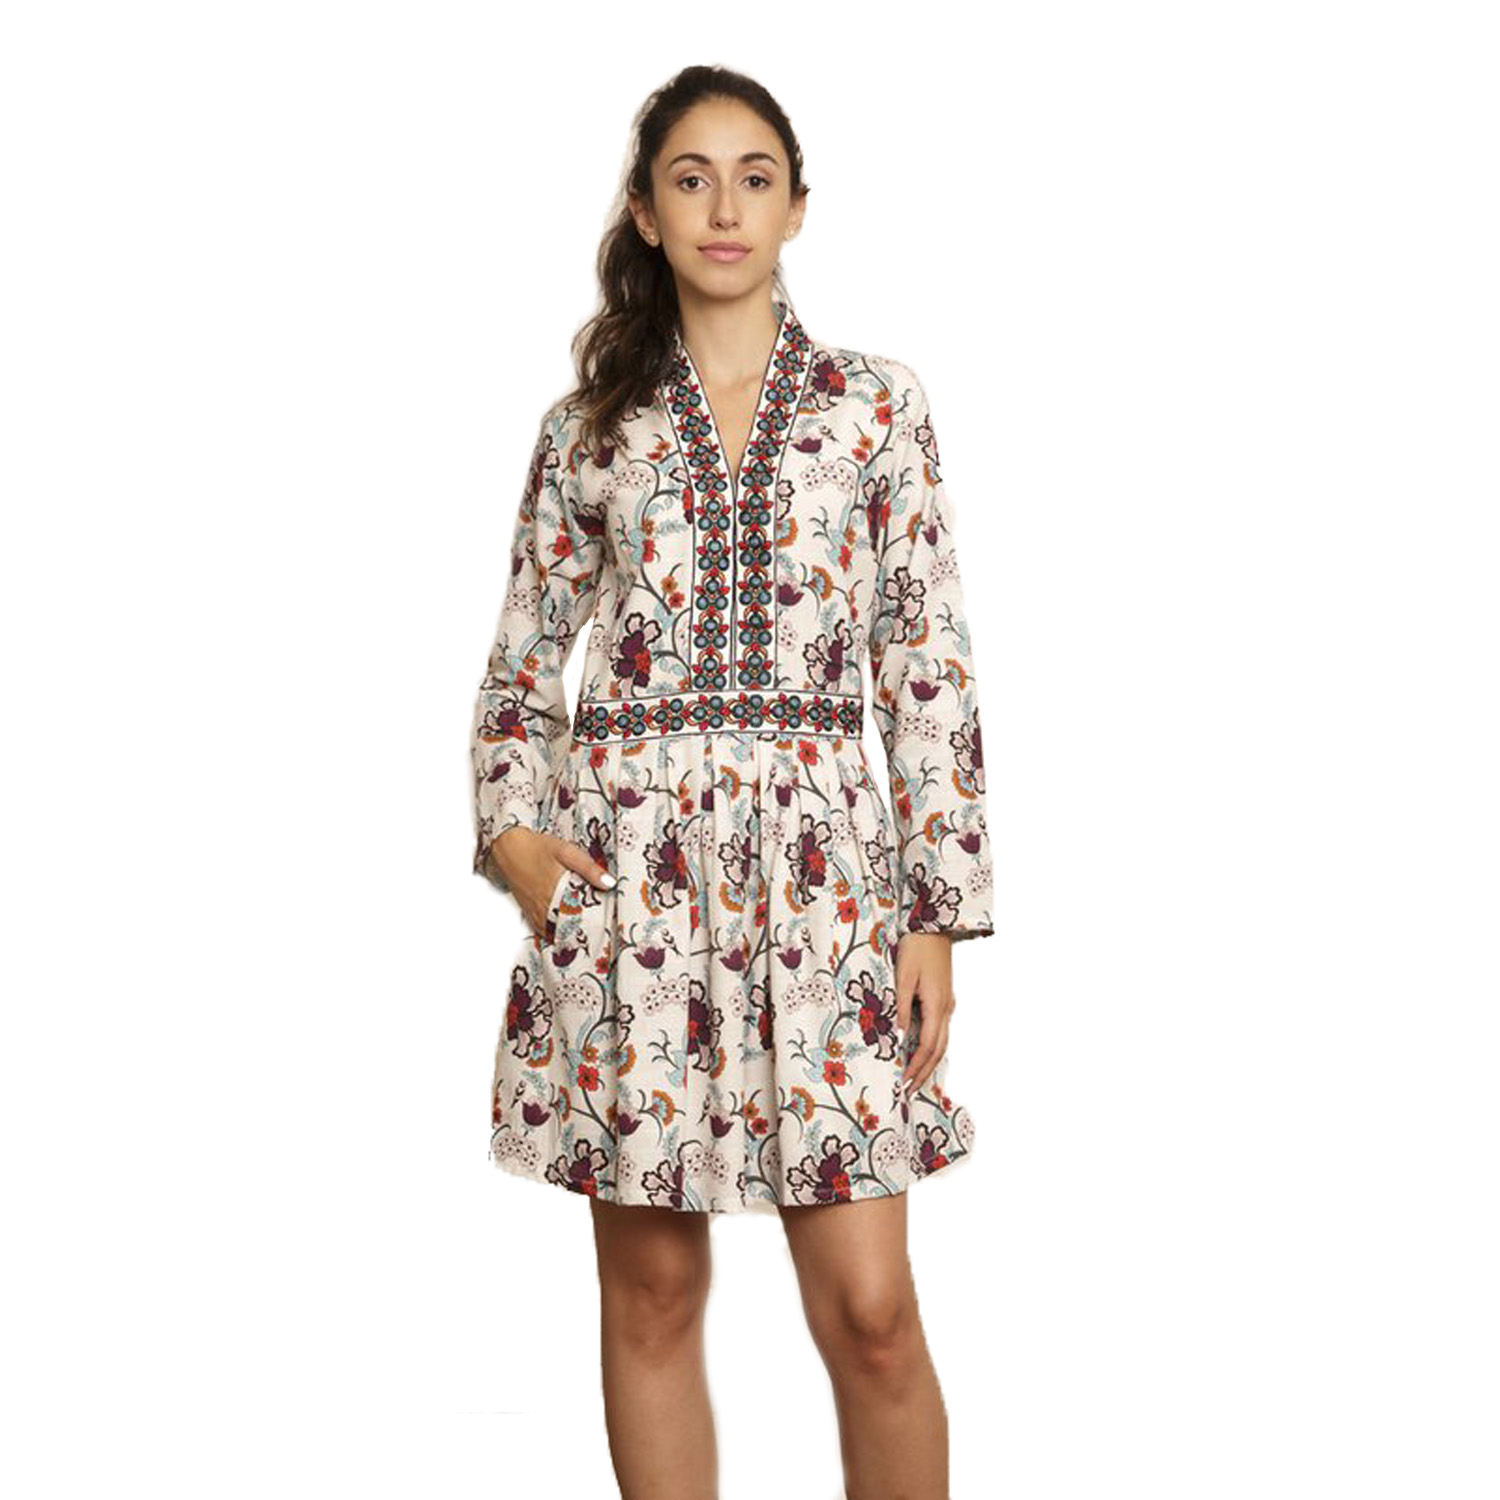 The Liliana Dress ,  Victoria Road  $135  *use code  VRCHIC20  for 20& off*